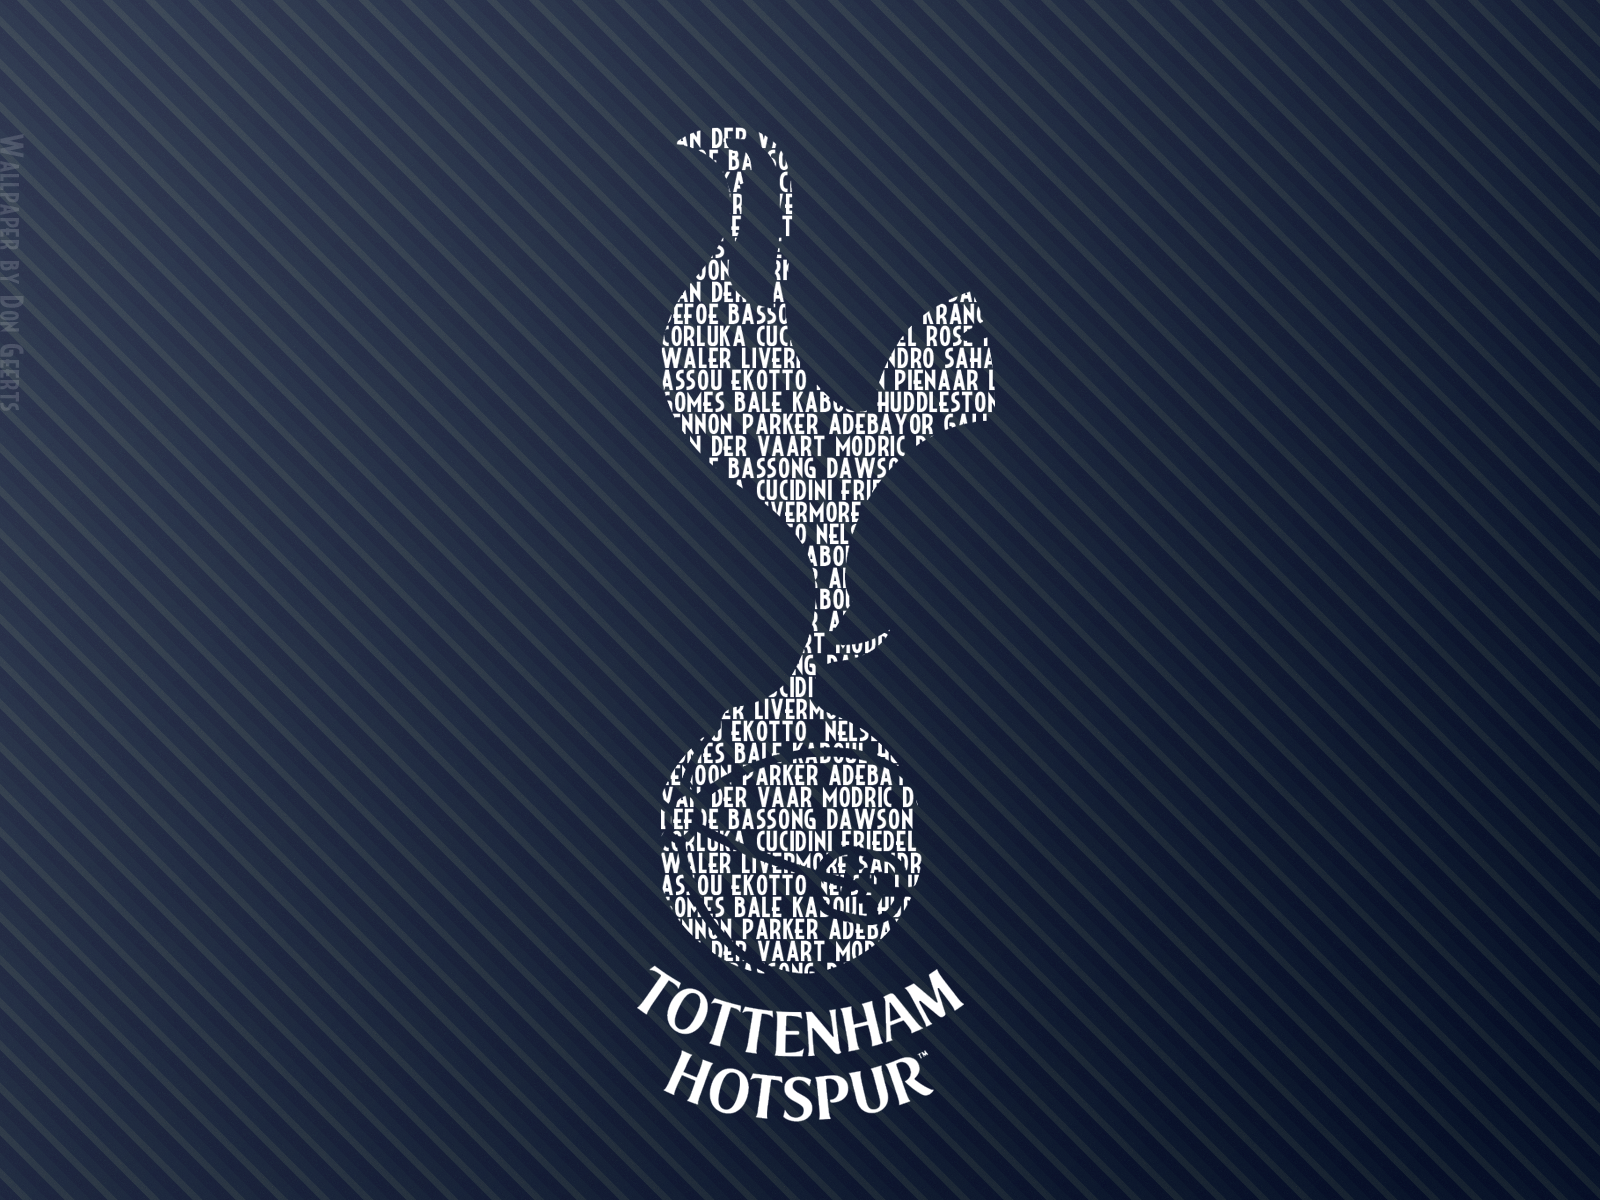 thought you guys might like this spurs wallpaper best one ive found for a while